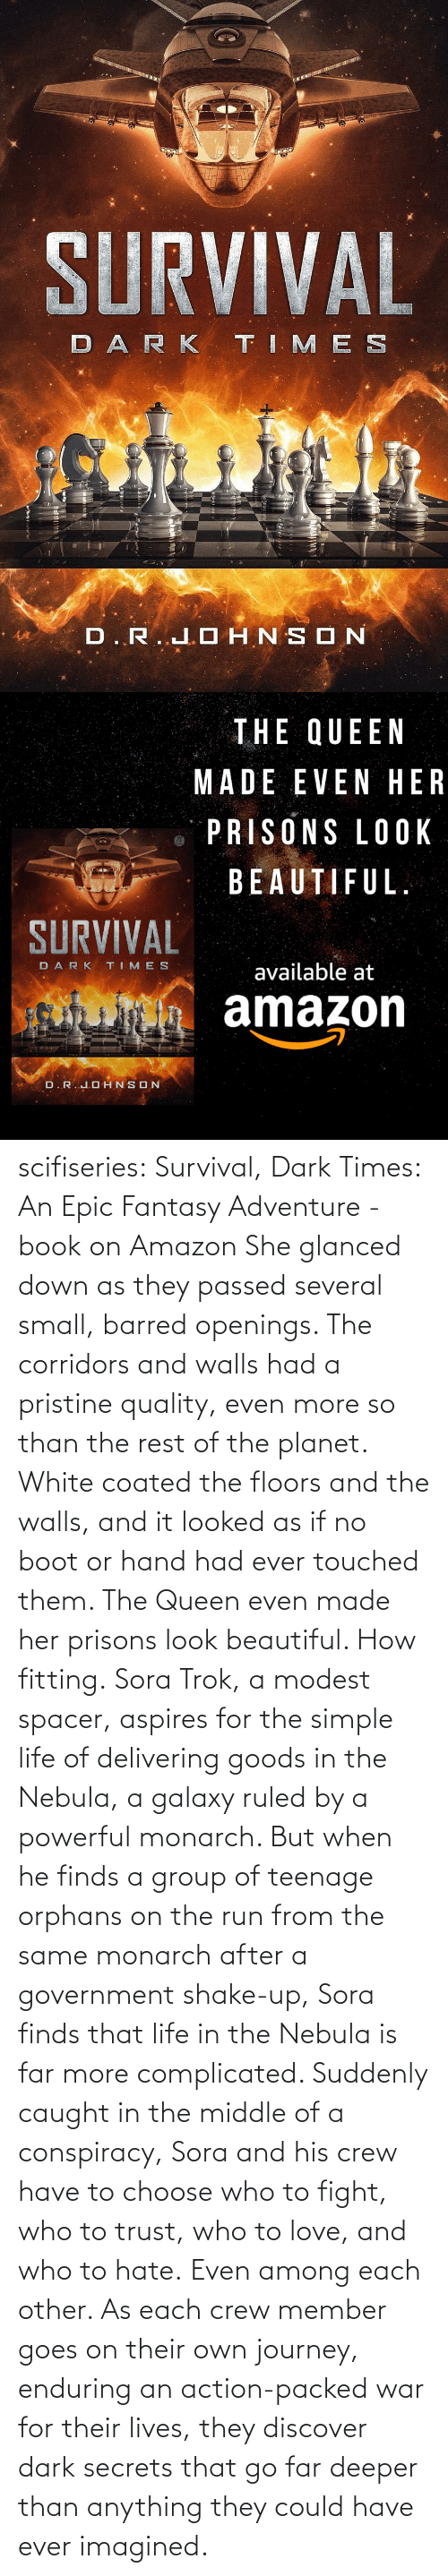 their: scifiseries: Survival, Dark Times: An Epic Fantasy Adventure - book on Amazon  She glanced down as they  passed several small, barred openings. The corridors and walls had a  pristine quality, even more so than the rest of the planet. White coated  the floors and the walls, and it looked as if no boot or hand had ever  touched them.  The Queen even made her prisons look beautiful.  How fitting. Sora  Trok, a modest spacer, aspires for the simple life of delivering goods  in the Nebula, a galaxy ruled by a powerful monarch. But when he finds a  group of teenage orphans on the run from the same monarch after a  government shake-up, Sora finds that life in the Nebula is far more complicated.  Suddenly  caught in the middle of a conspiracy, Sora and his crew have to choose  who to fight, who to trust, who to love, and who to hate. Even among each other.  As  each crew member goes on their own journey, enduring an action-packed  war for their lives, they discover dark secrets that go far deeper than  anything they could have ever imagined.